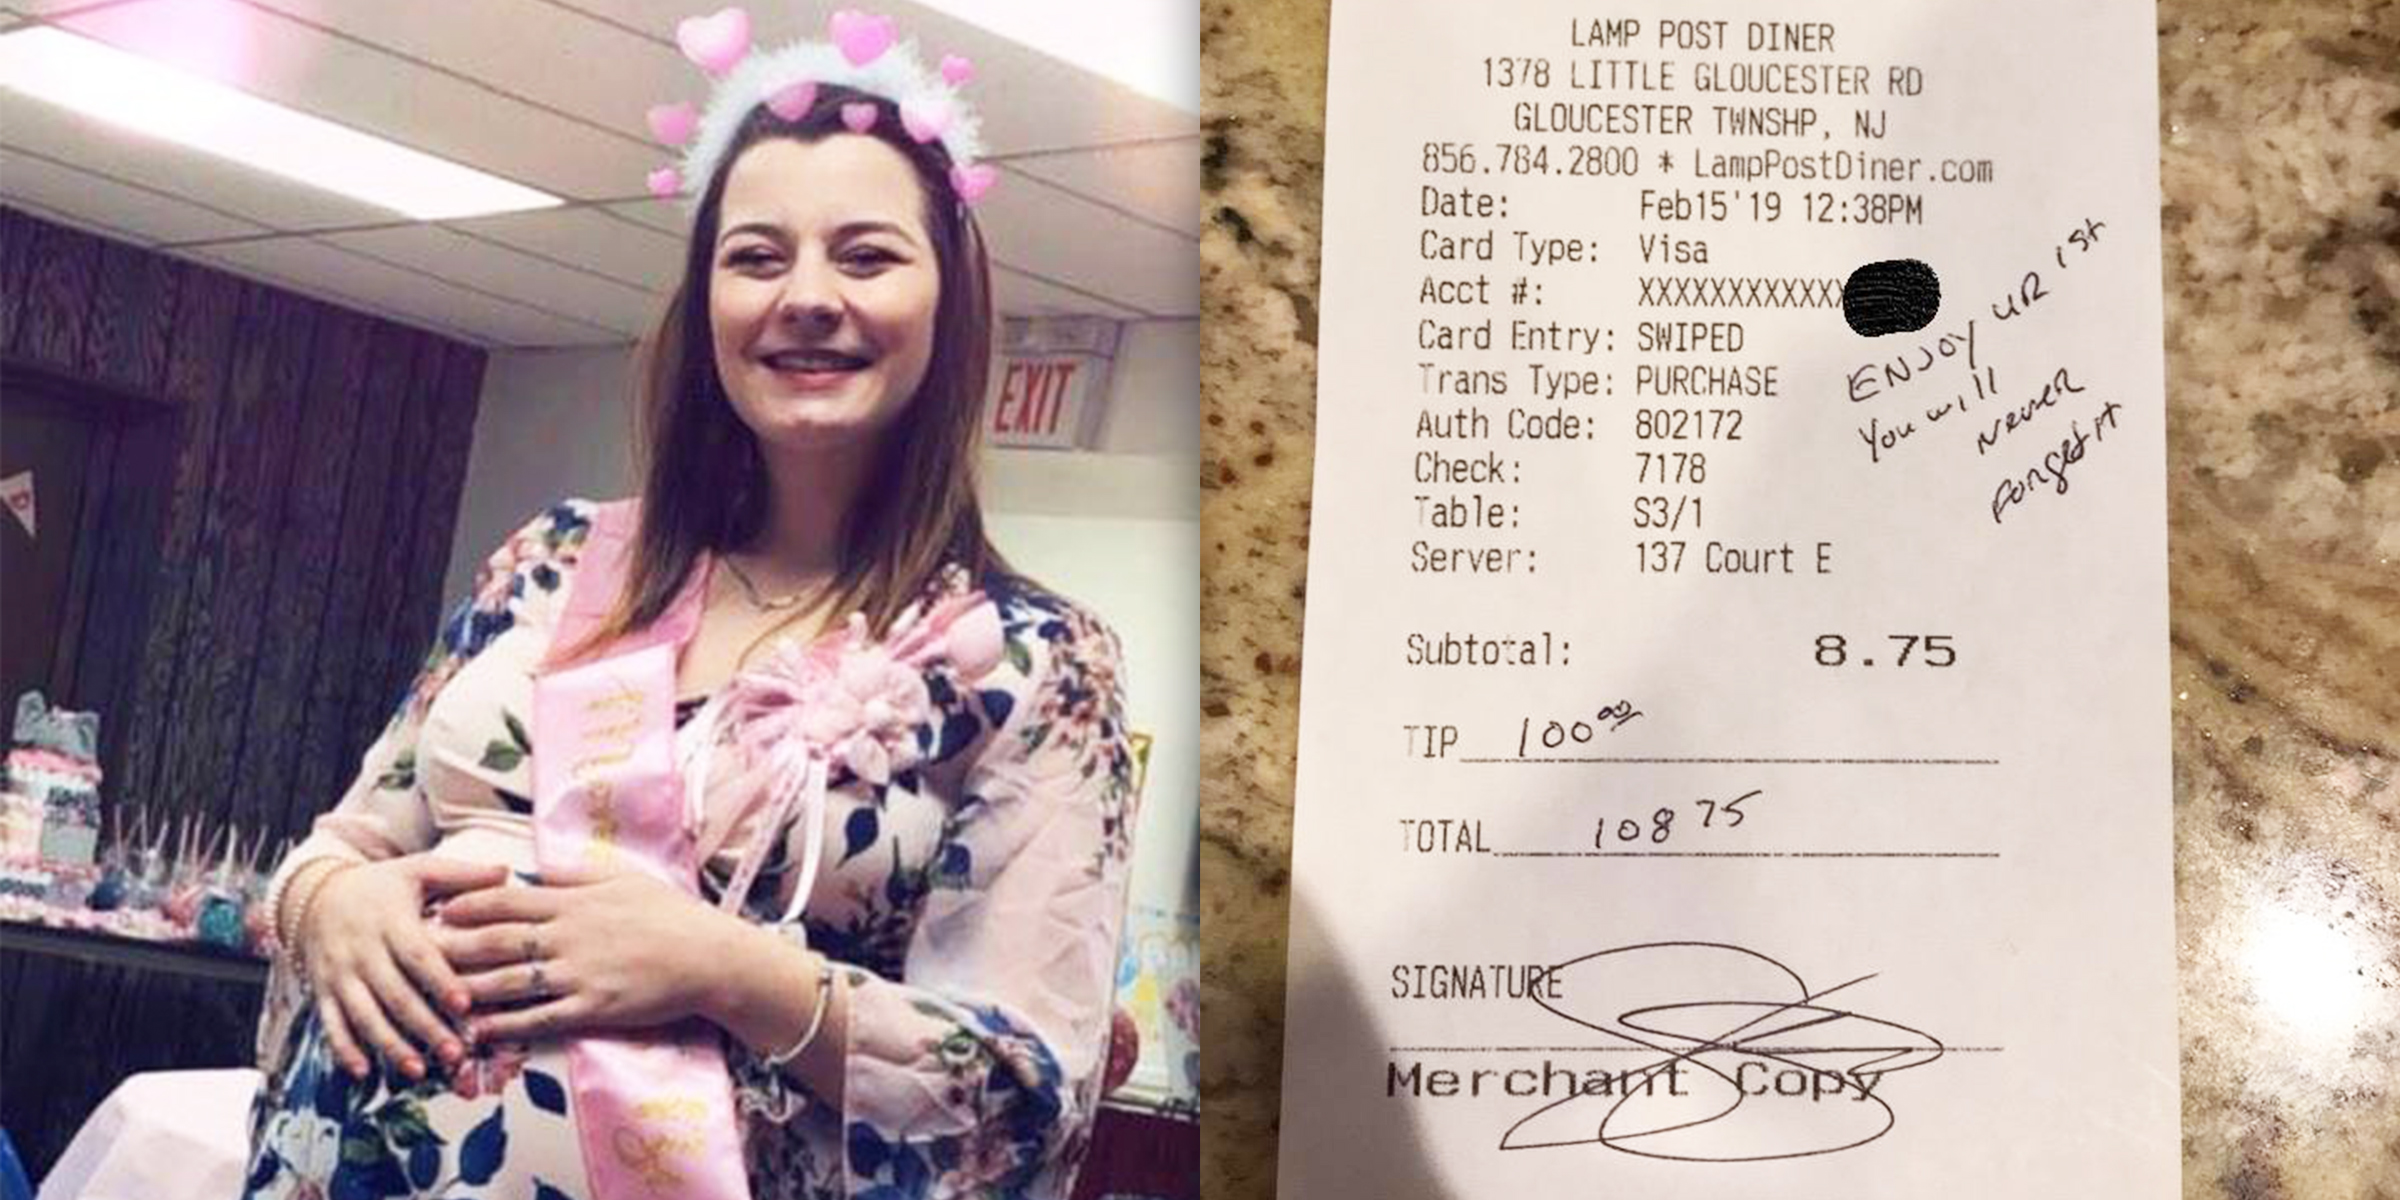 Police officer left pregnant waitress in New Jersey a $100 tip